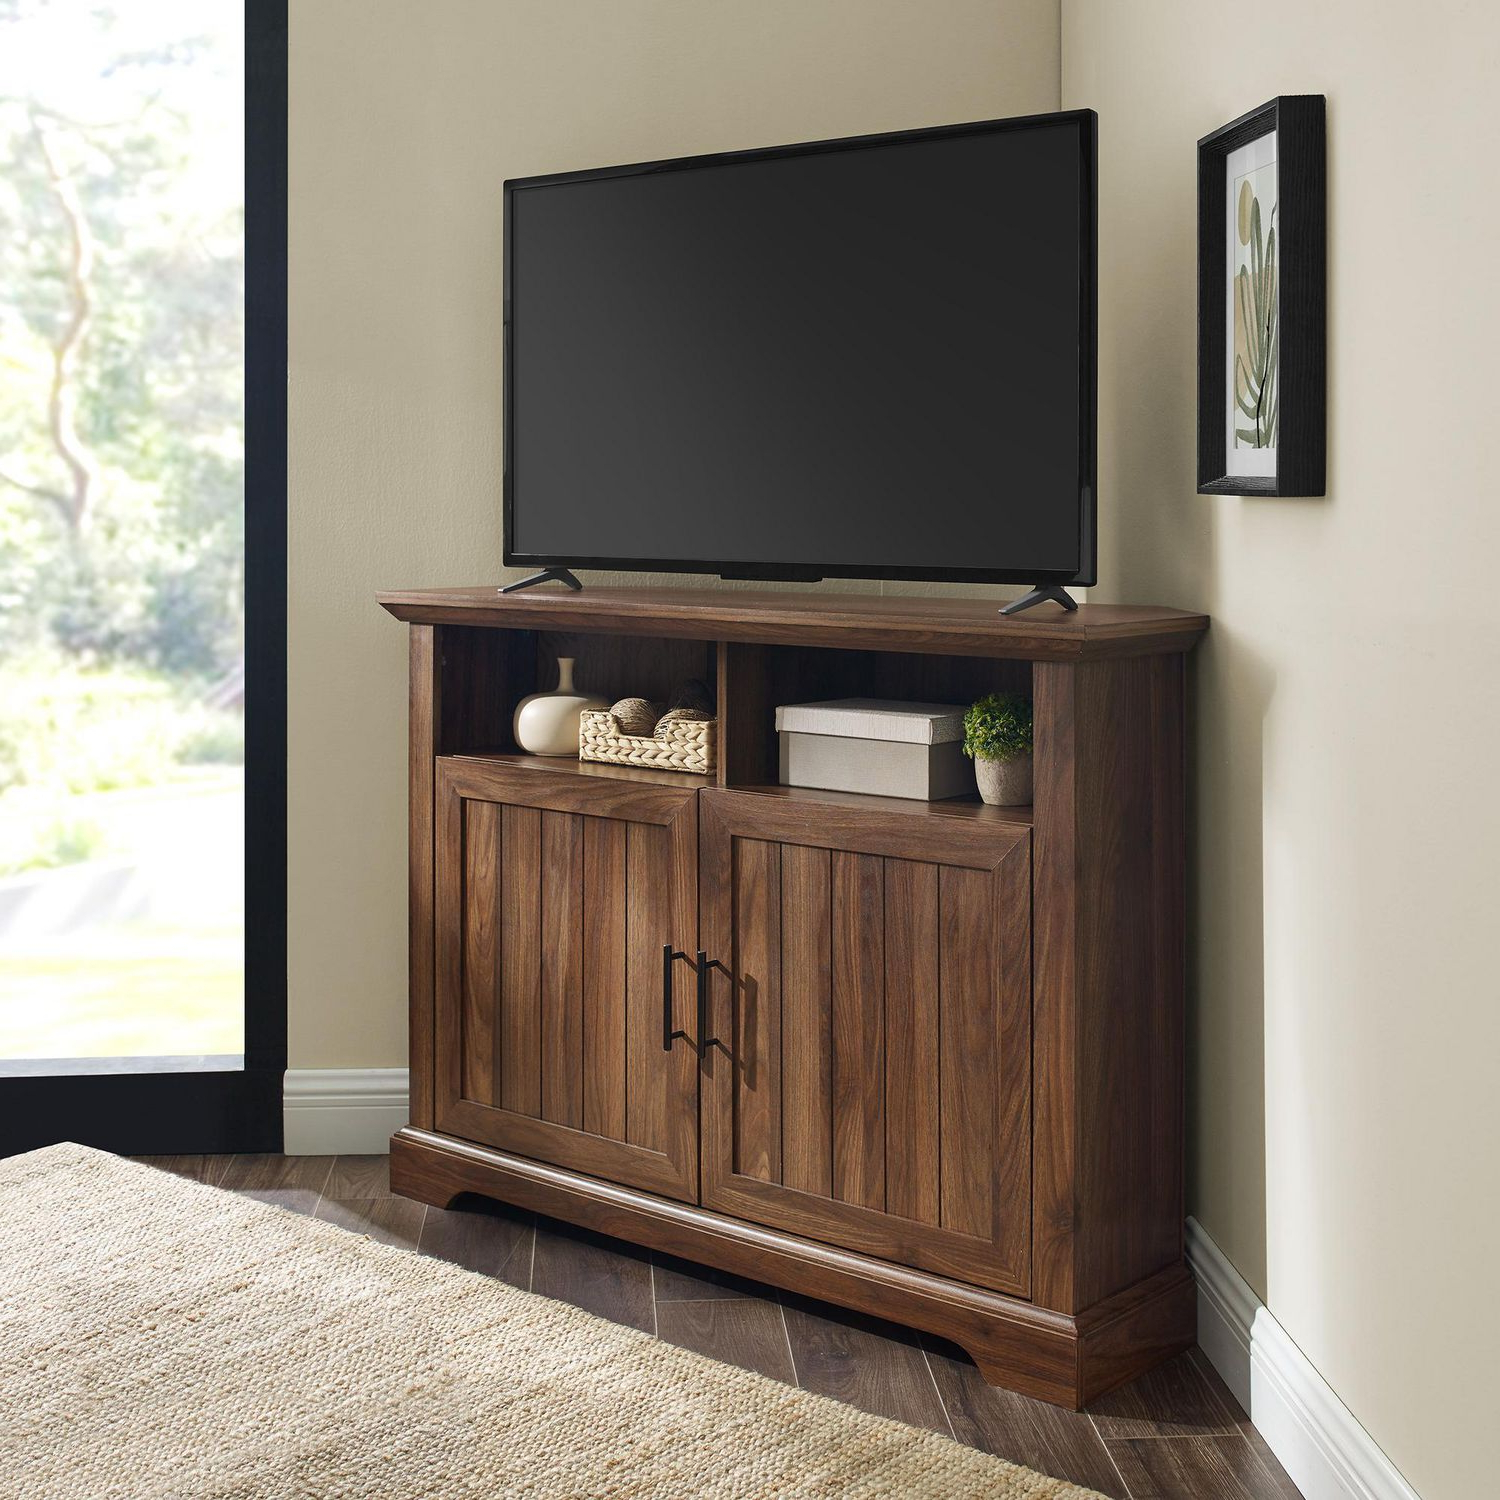 """Modern Farmhouse Grooved Door Corner Tv Console For Tv's Inside Lionel Corner Tv Stands For Tvs Up To 48"""" (View 4 of 20)"""